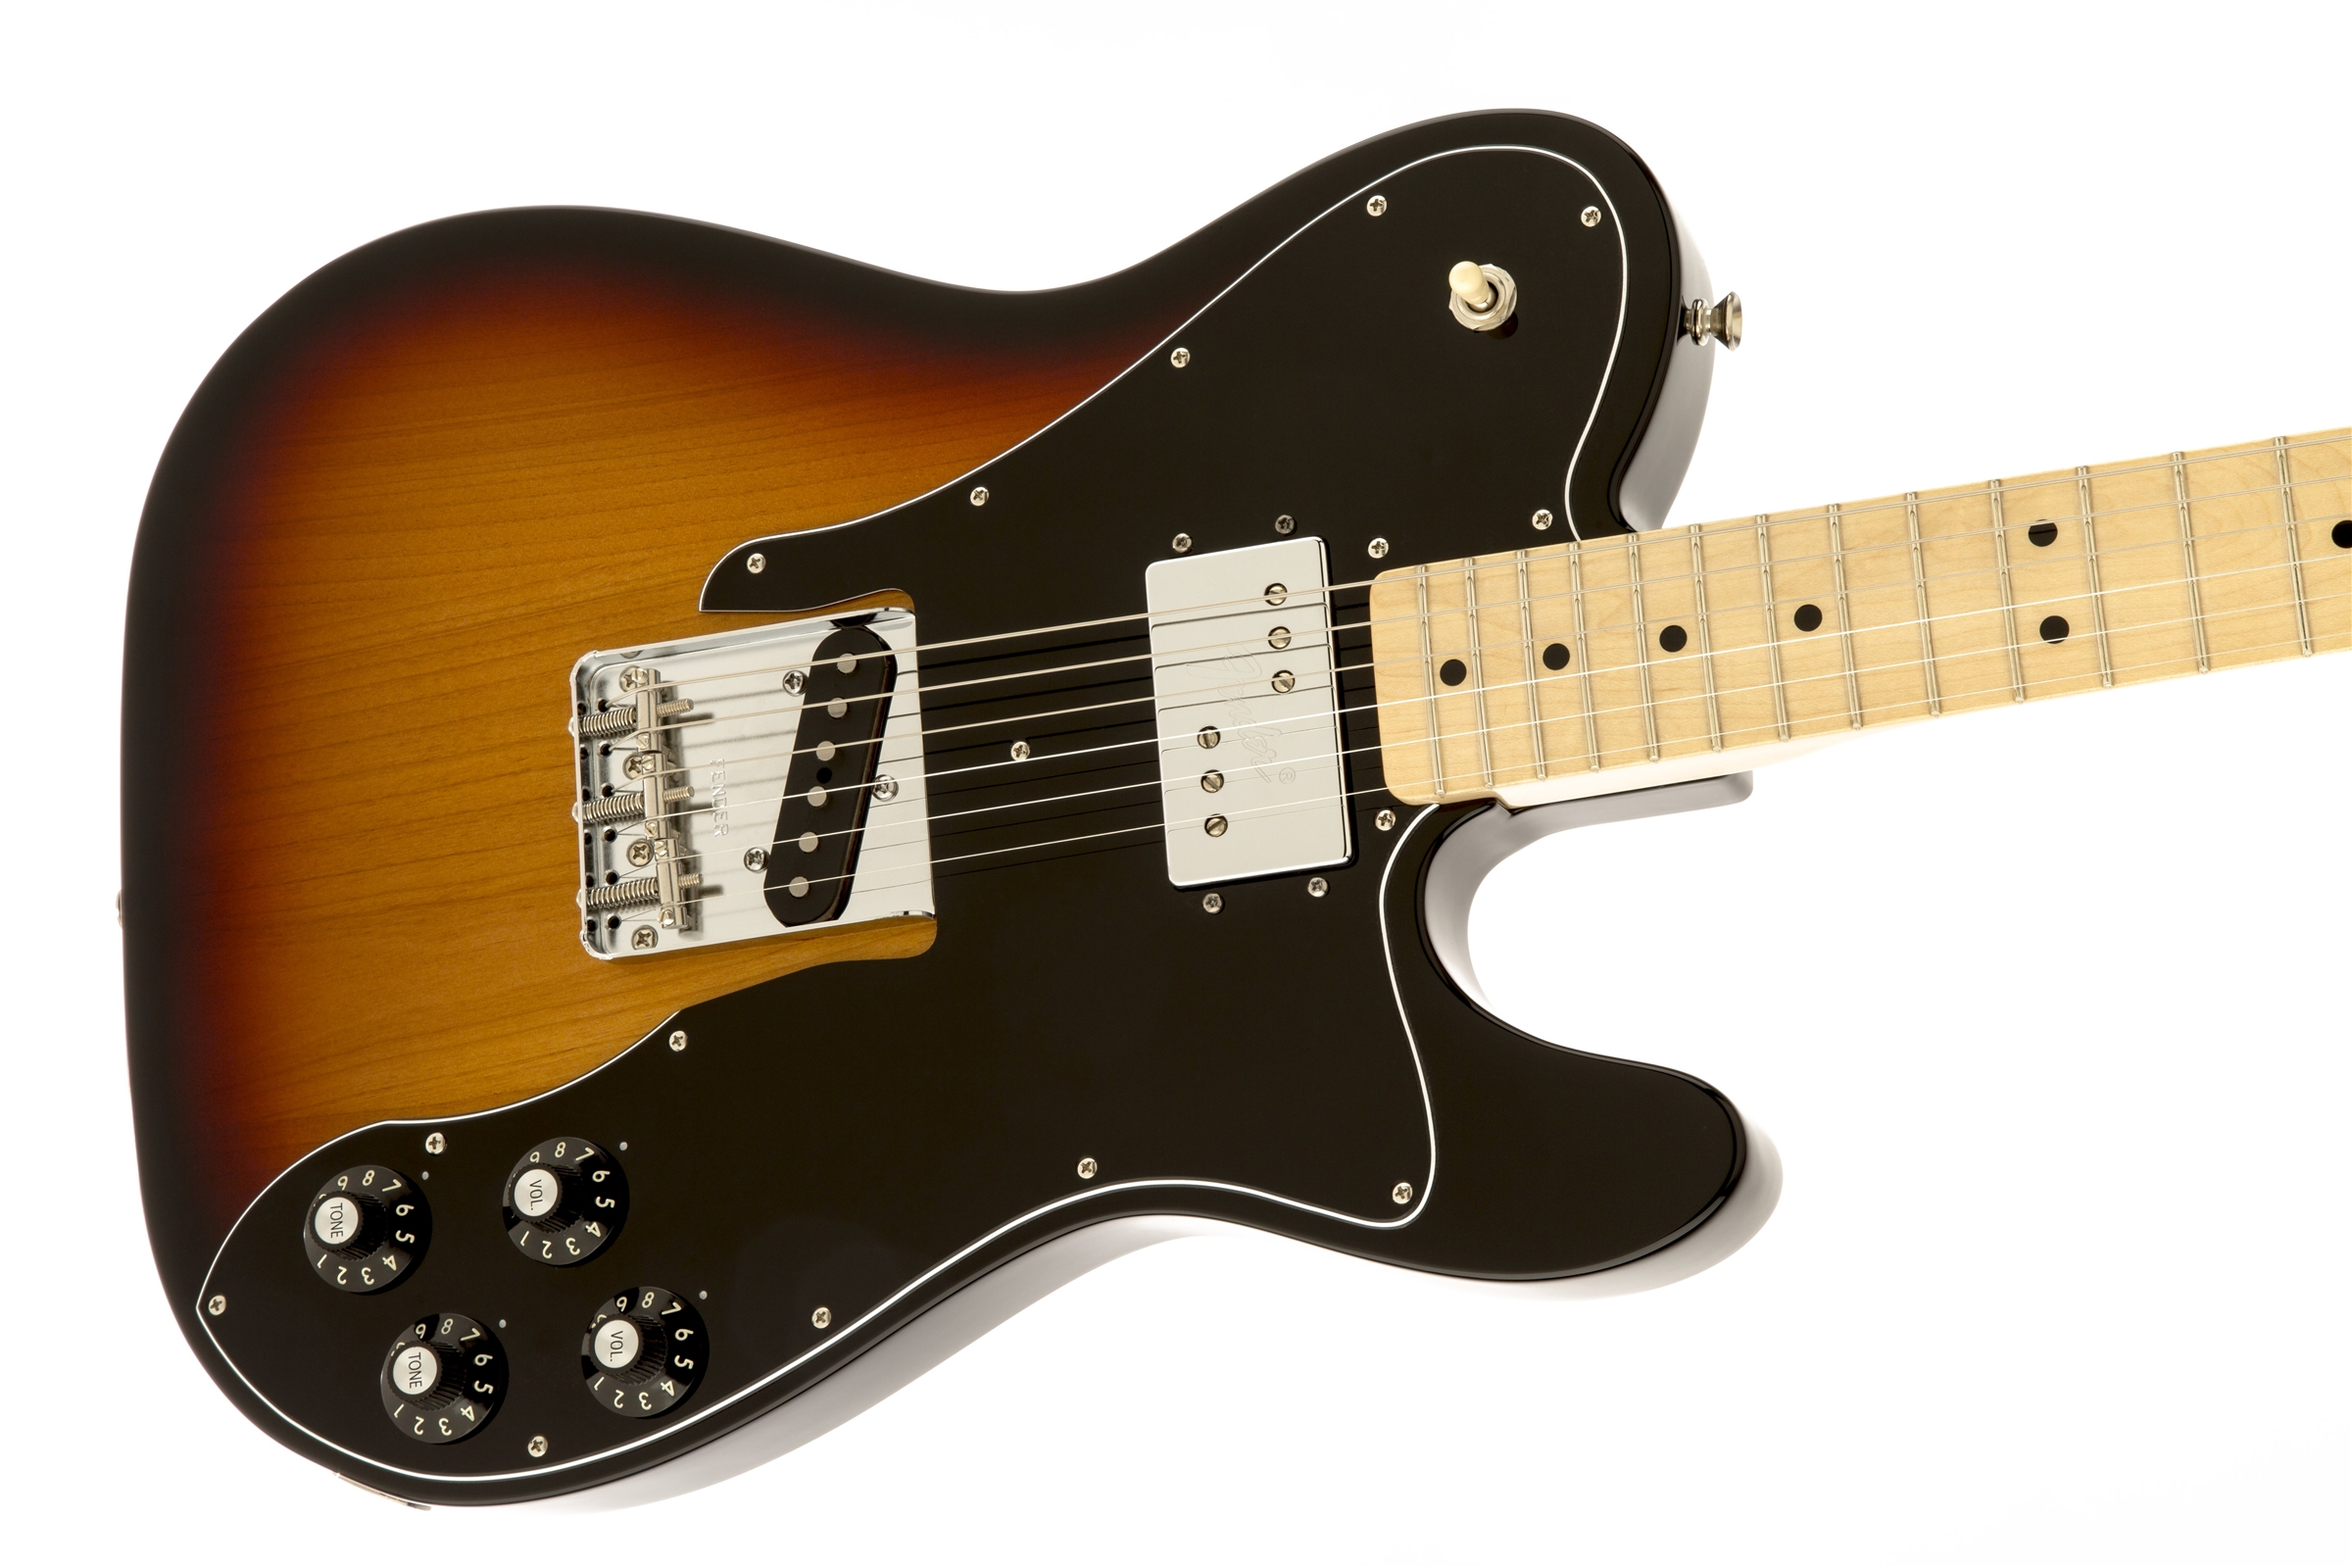 0137502300_gtr_cntbdyright_001_nr classic series '72 telecaster� custom fender electric guitars  at alyssarenee.co